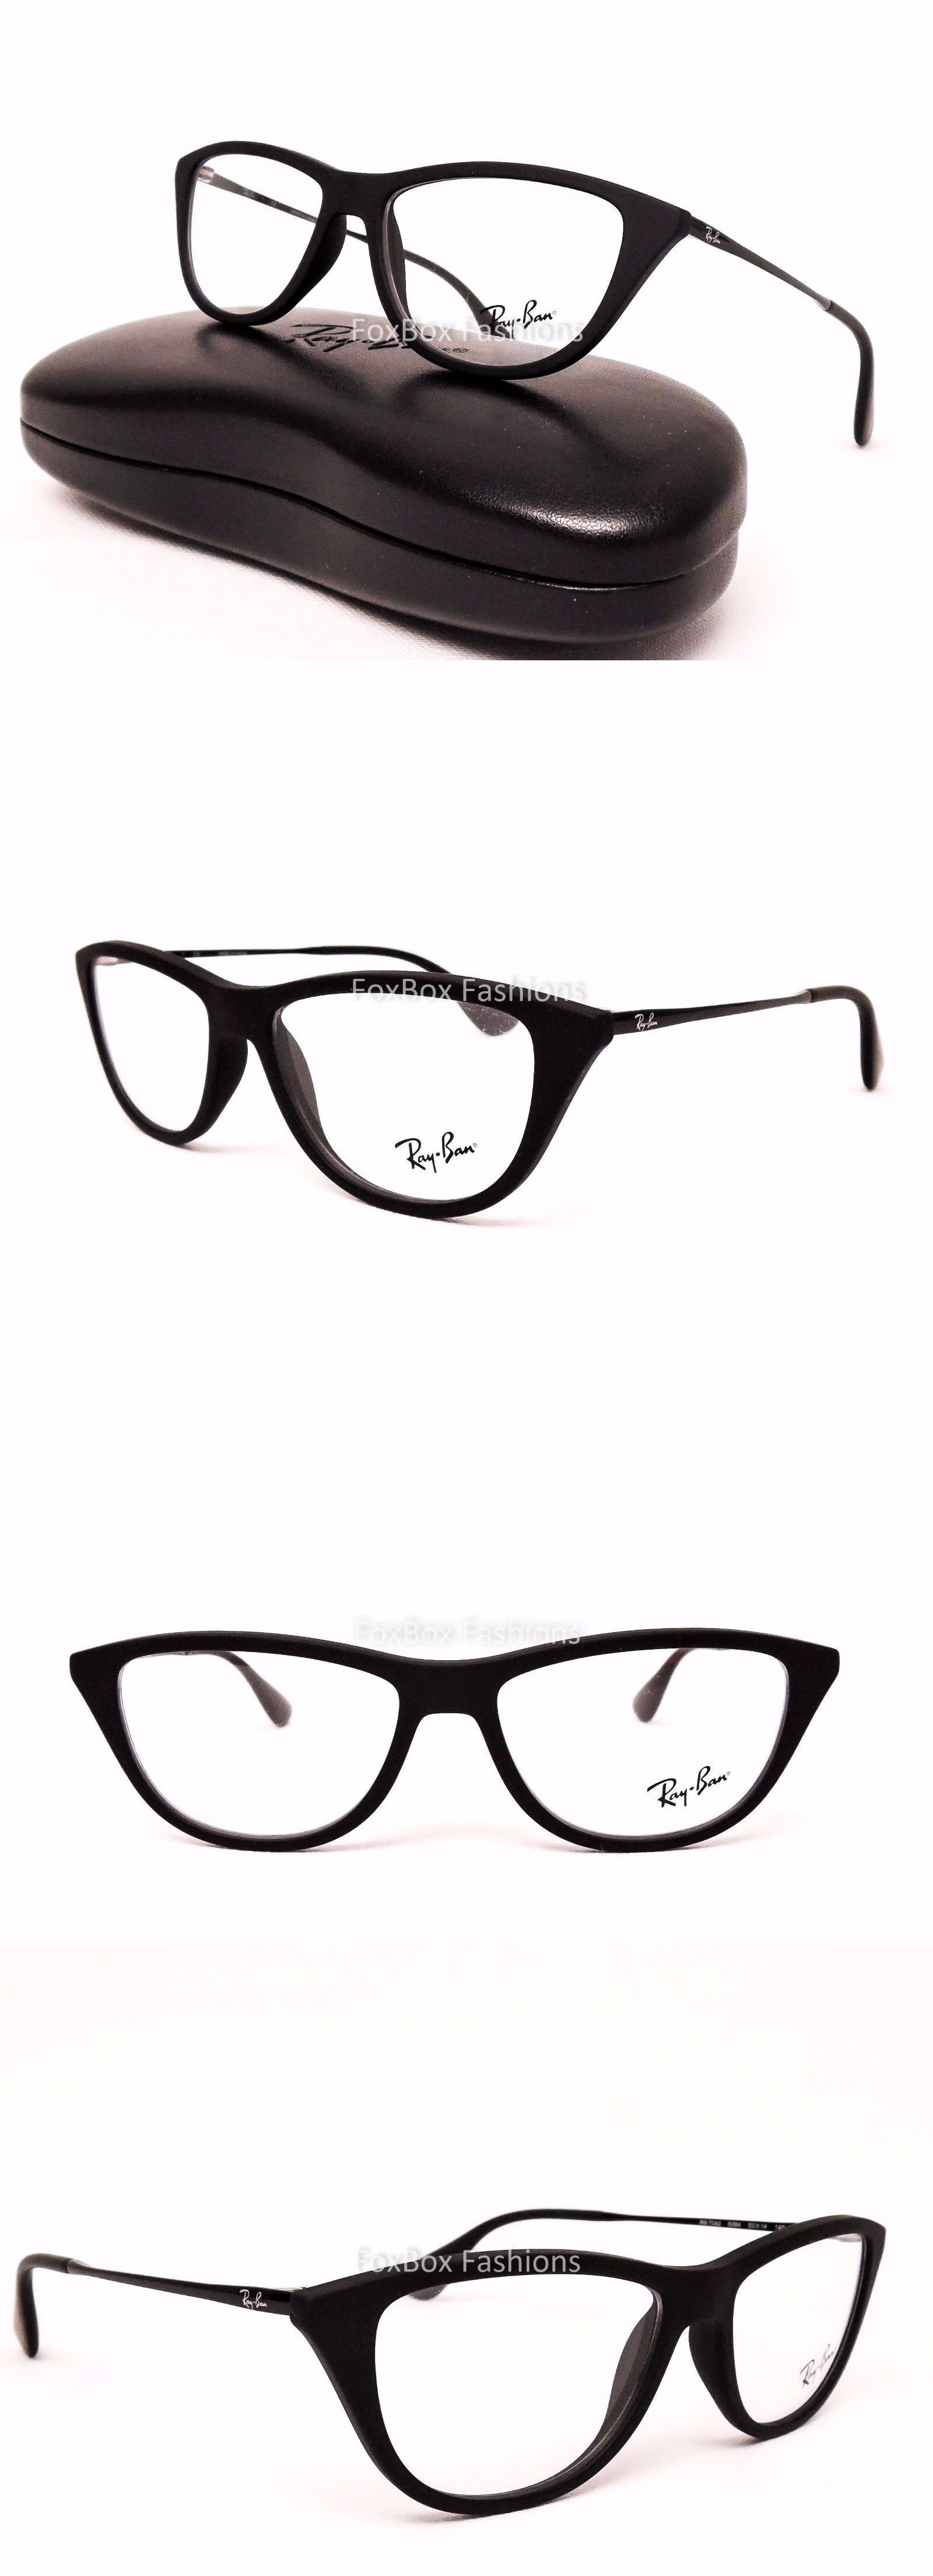 eyeglass frames ray ban rb 7042 5364 eyeglasses optical frames glasses matte black 52mm